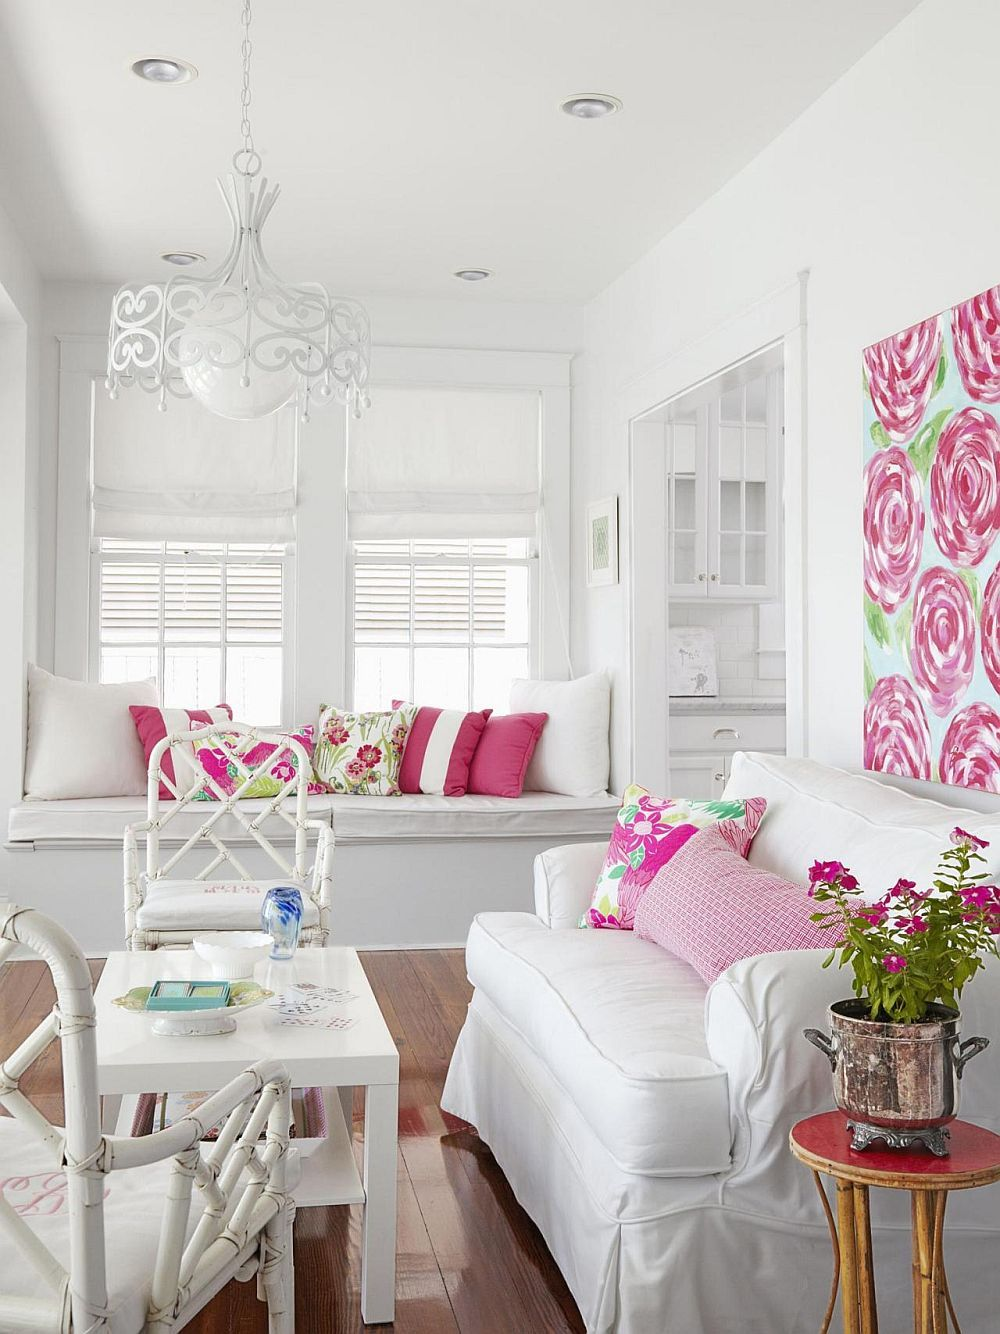 10 Sunroom Seating Ideas from the Comfy to the Creative   Sunroom ...